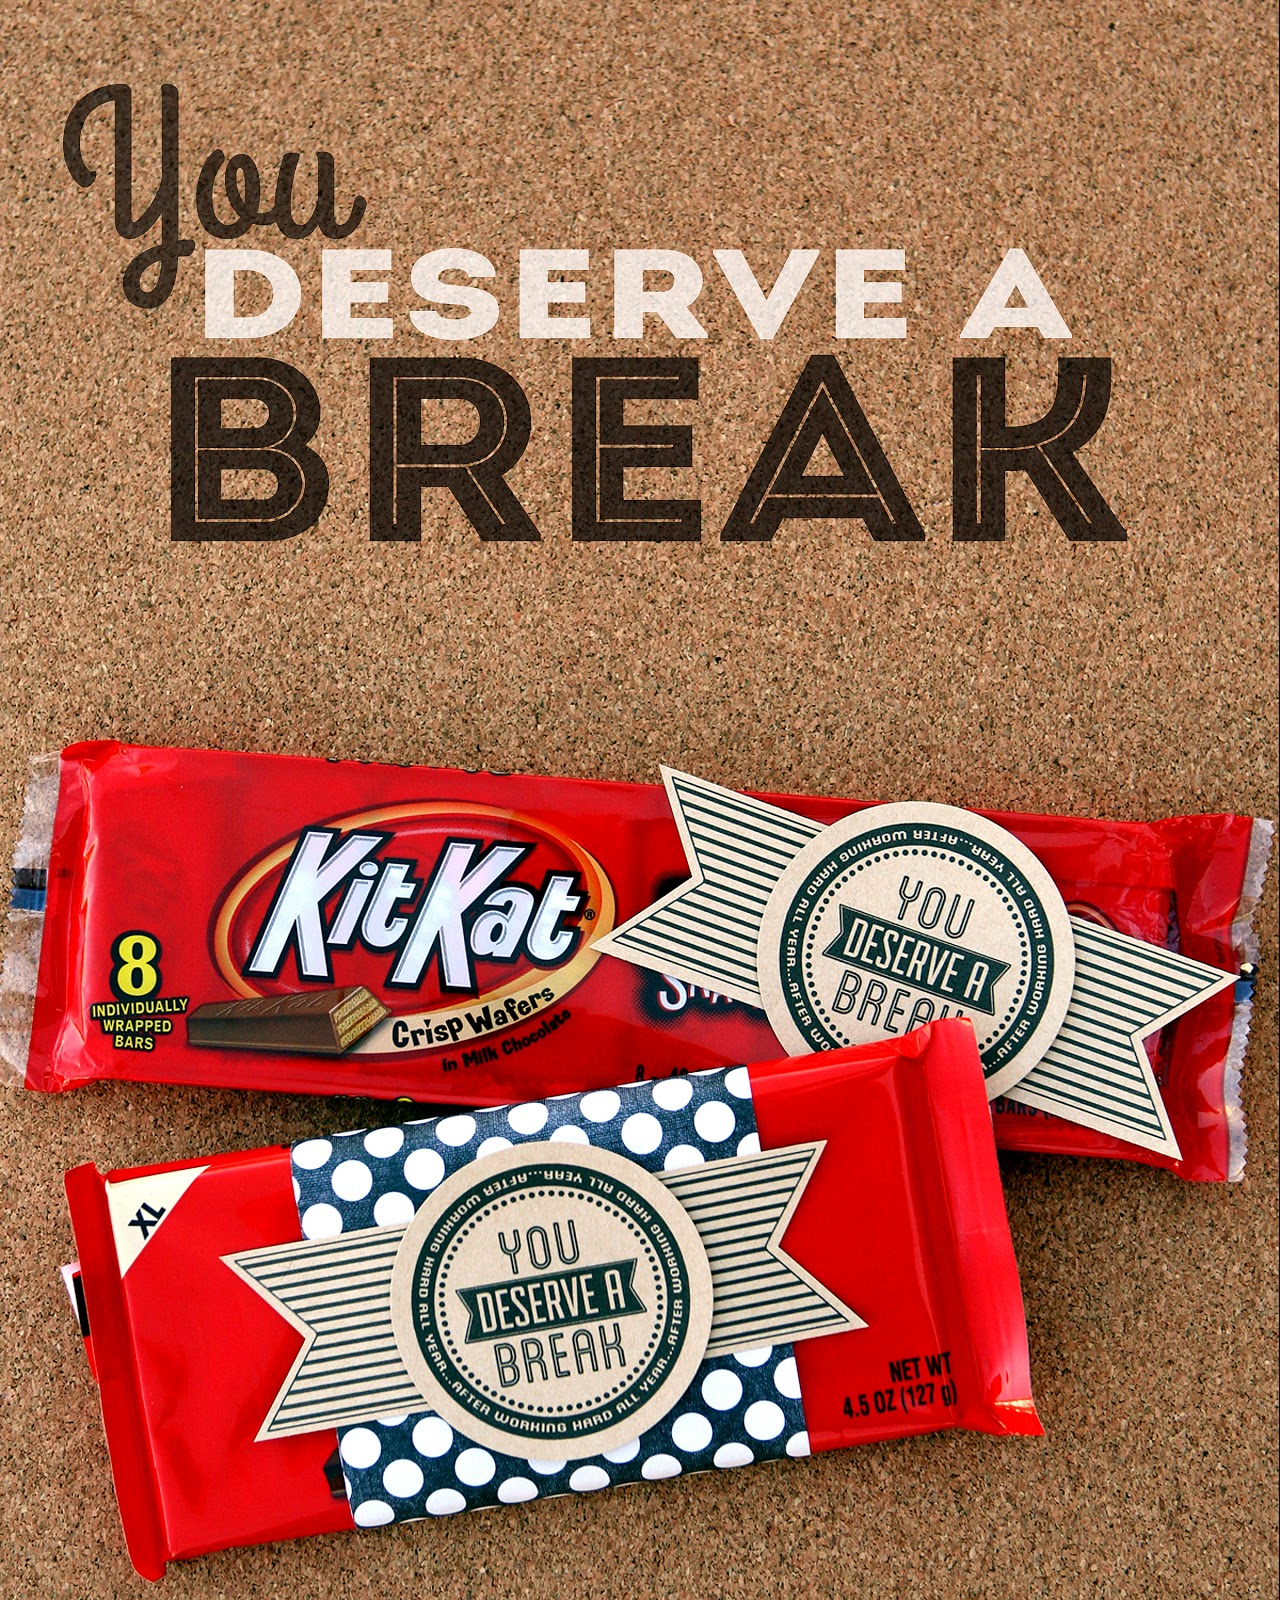 You Deserve A Break - Eighteen25